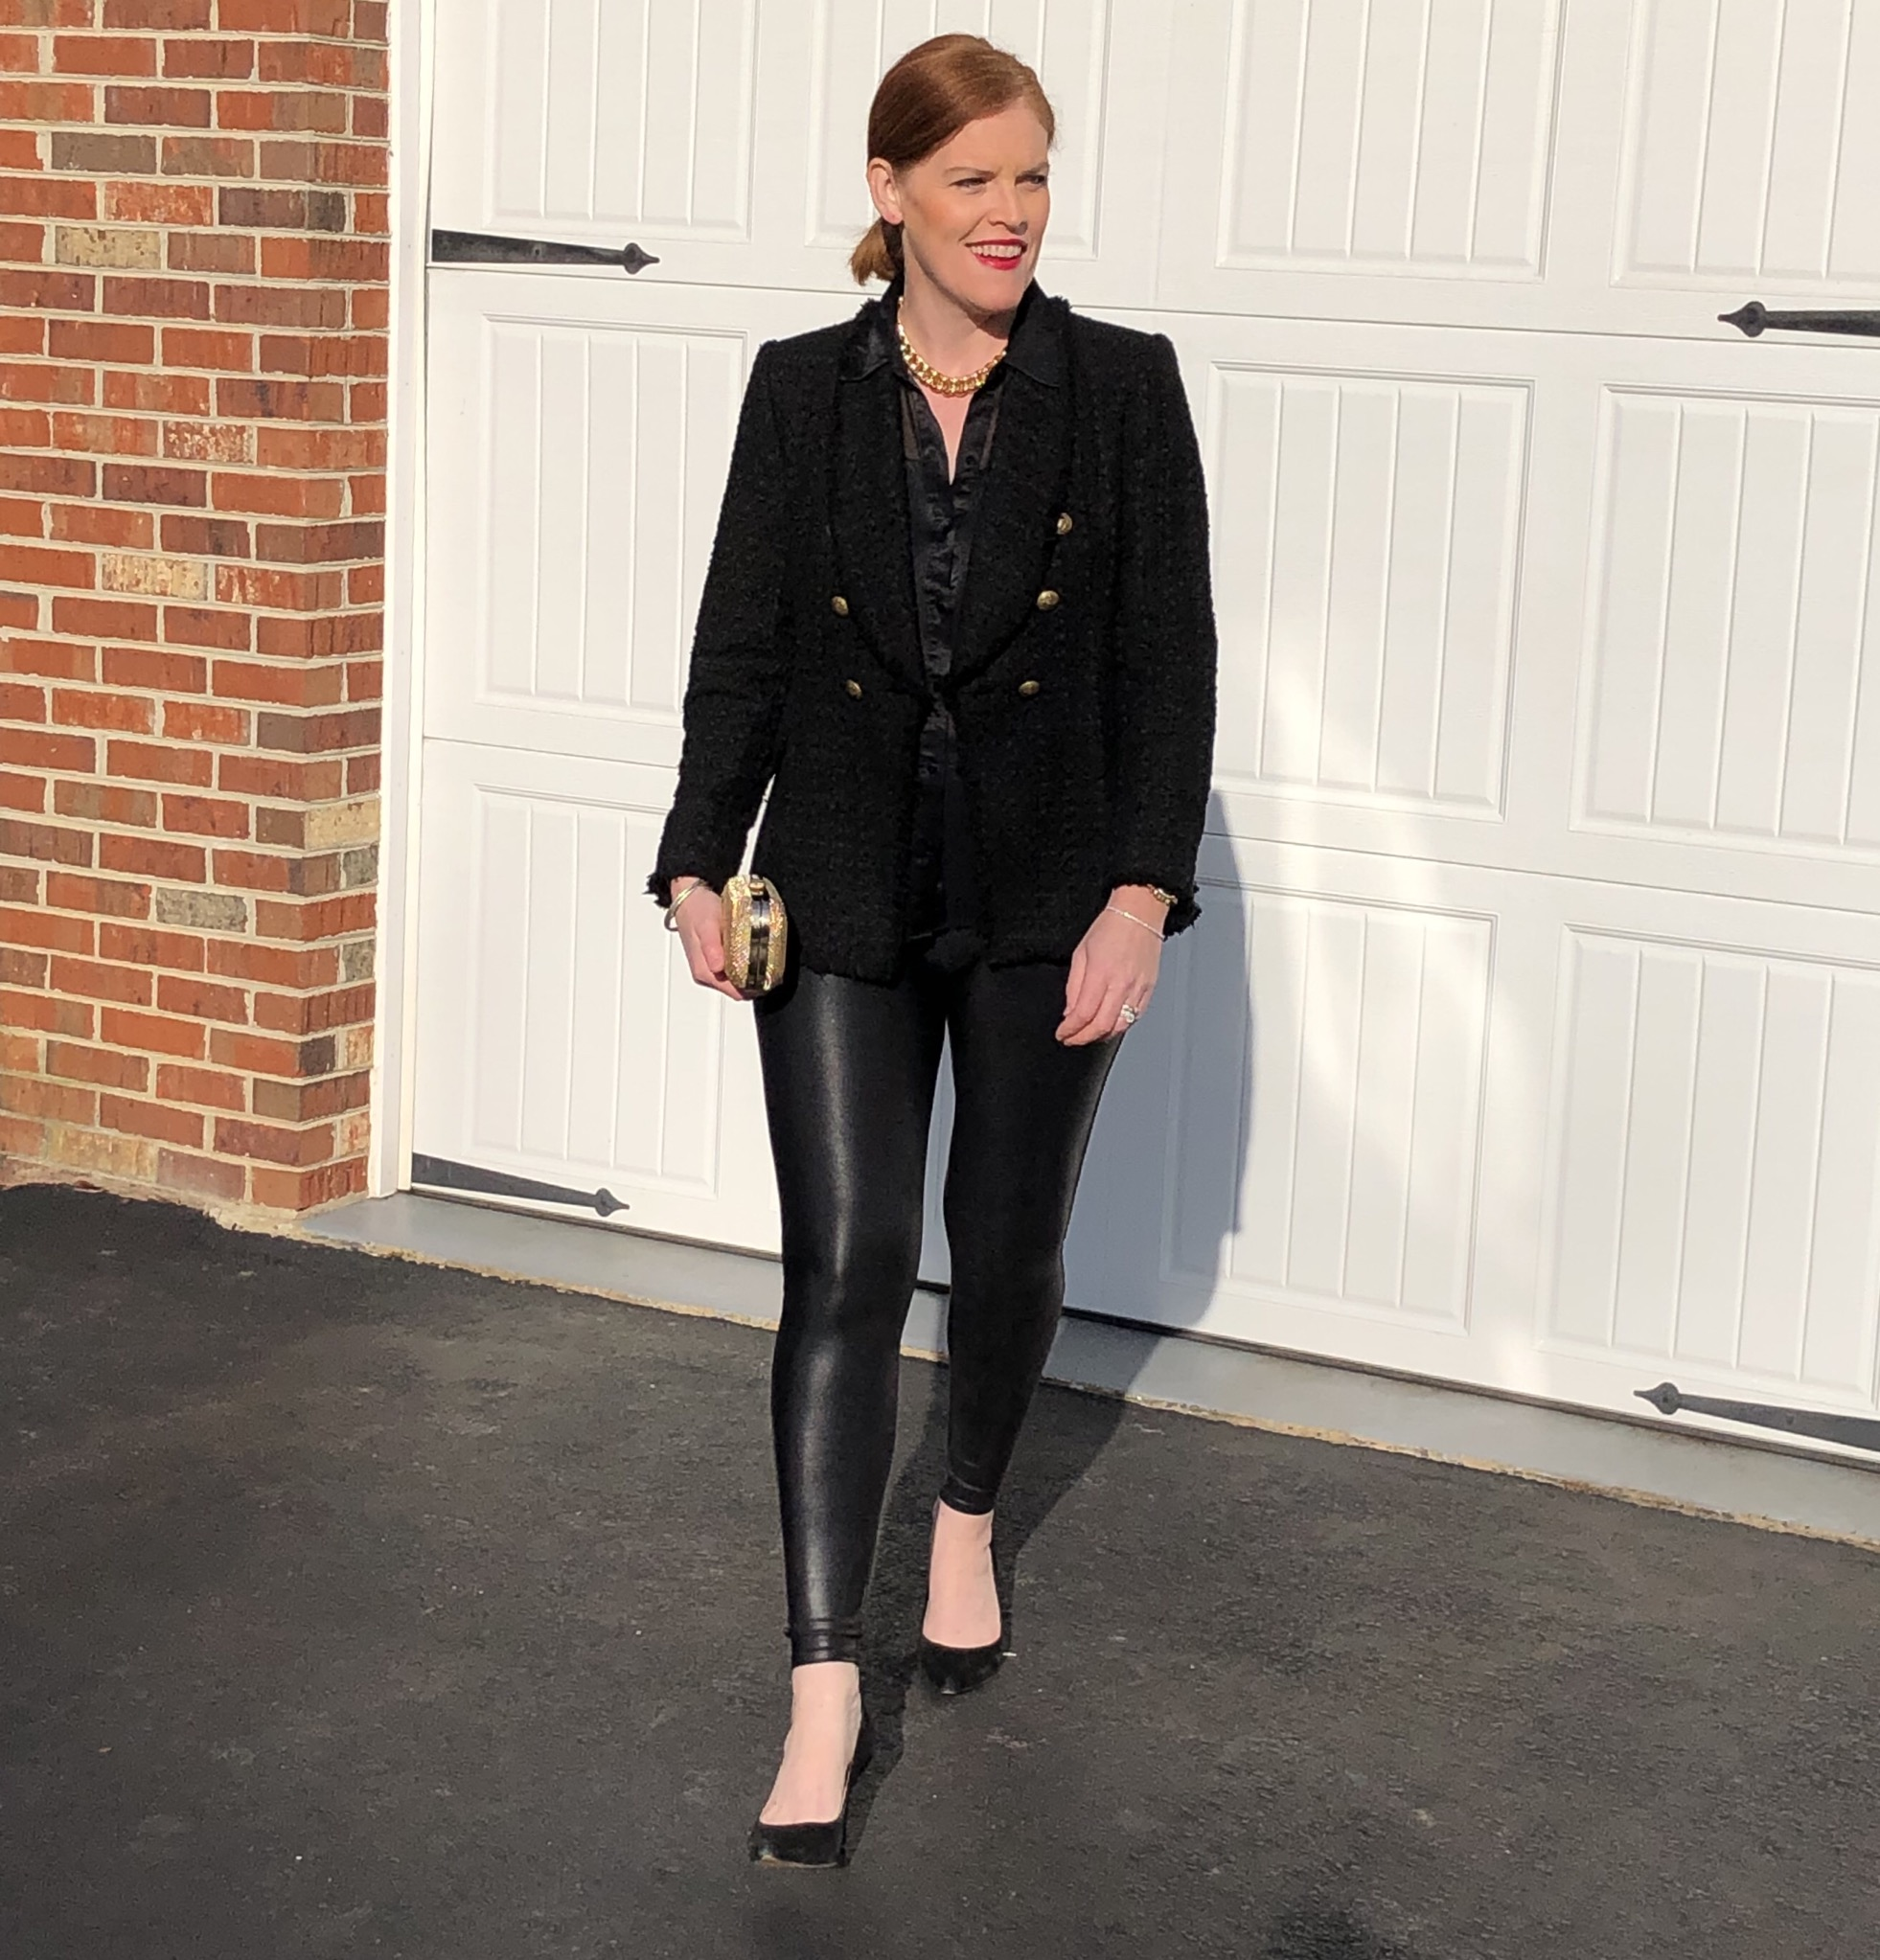 How to Style Chic All-Black Holiday Outfit